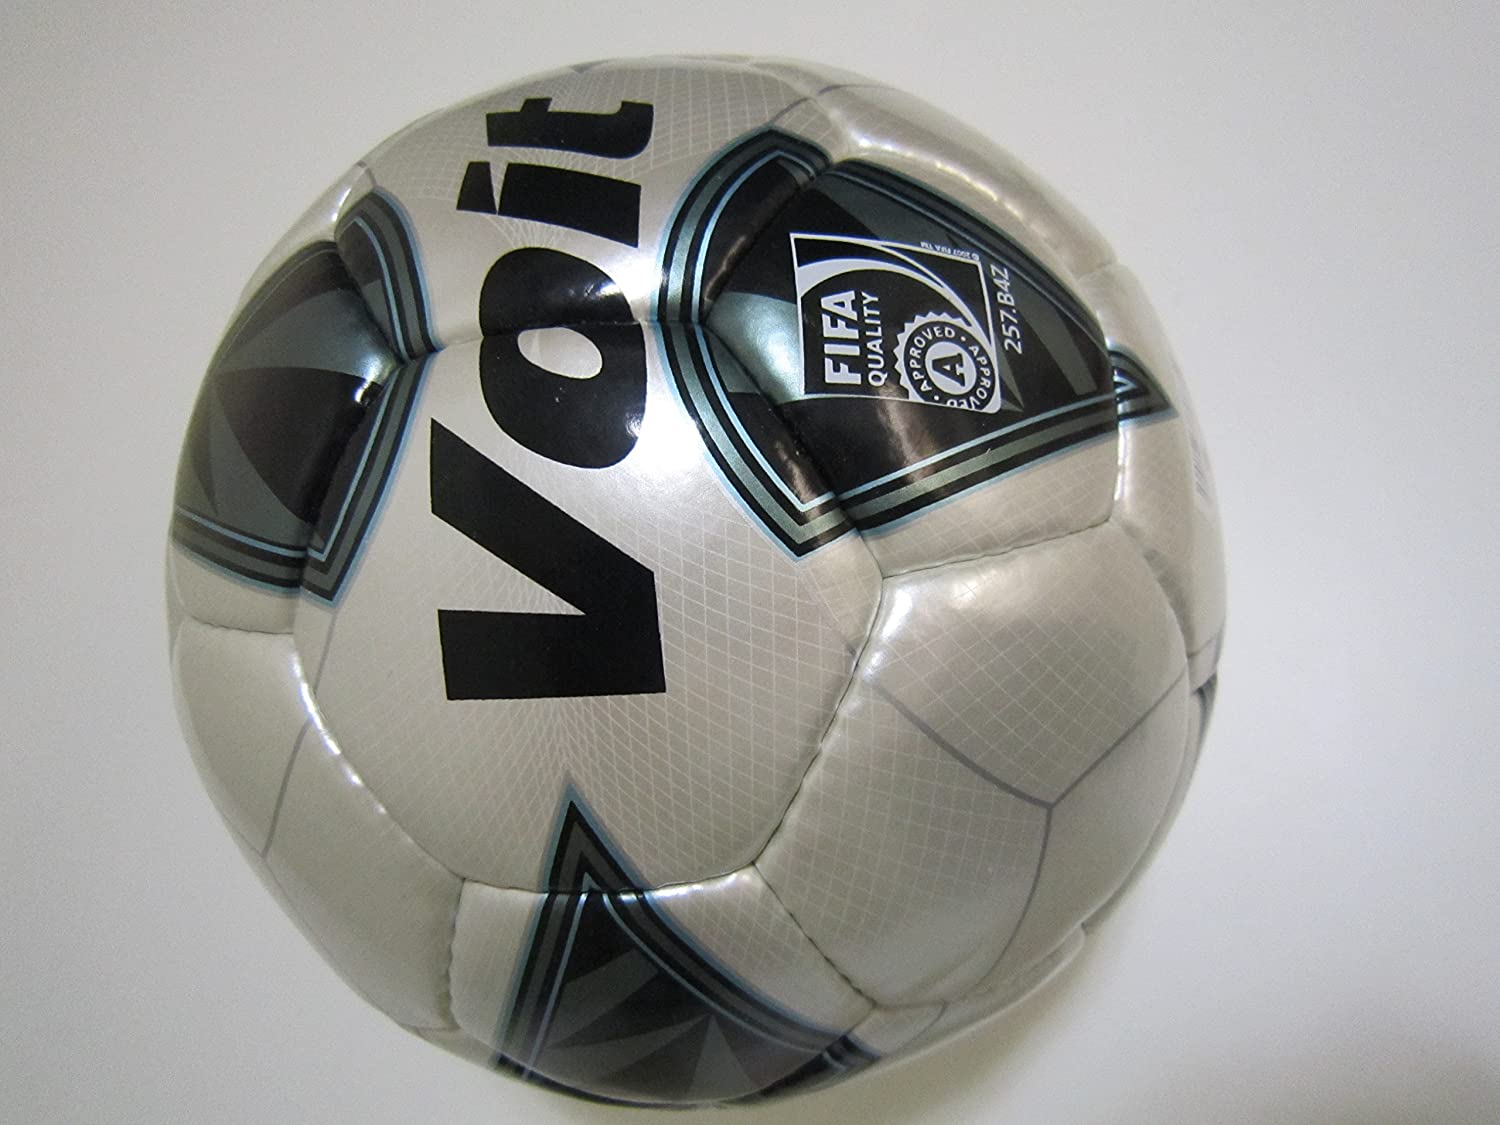 Voit FMF Official Match ( FIFA Approved ) B004PBED2G5